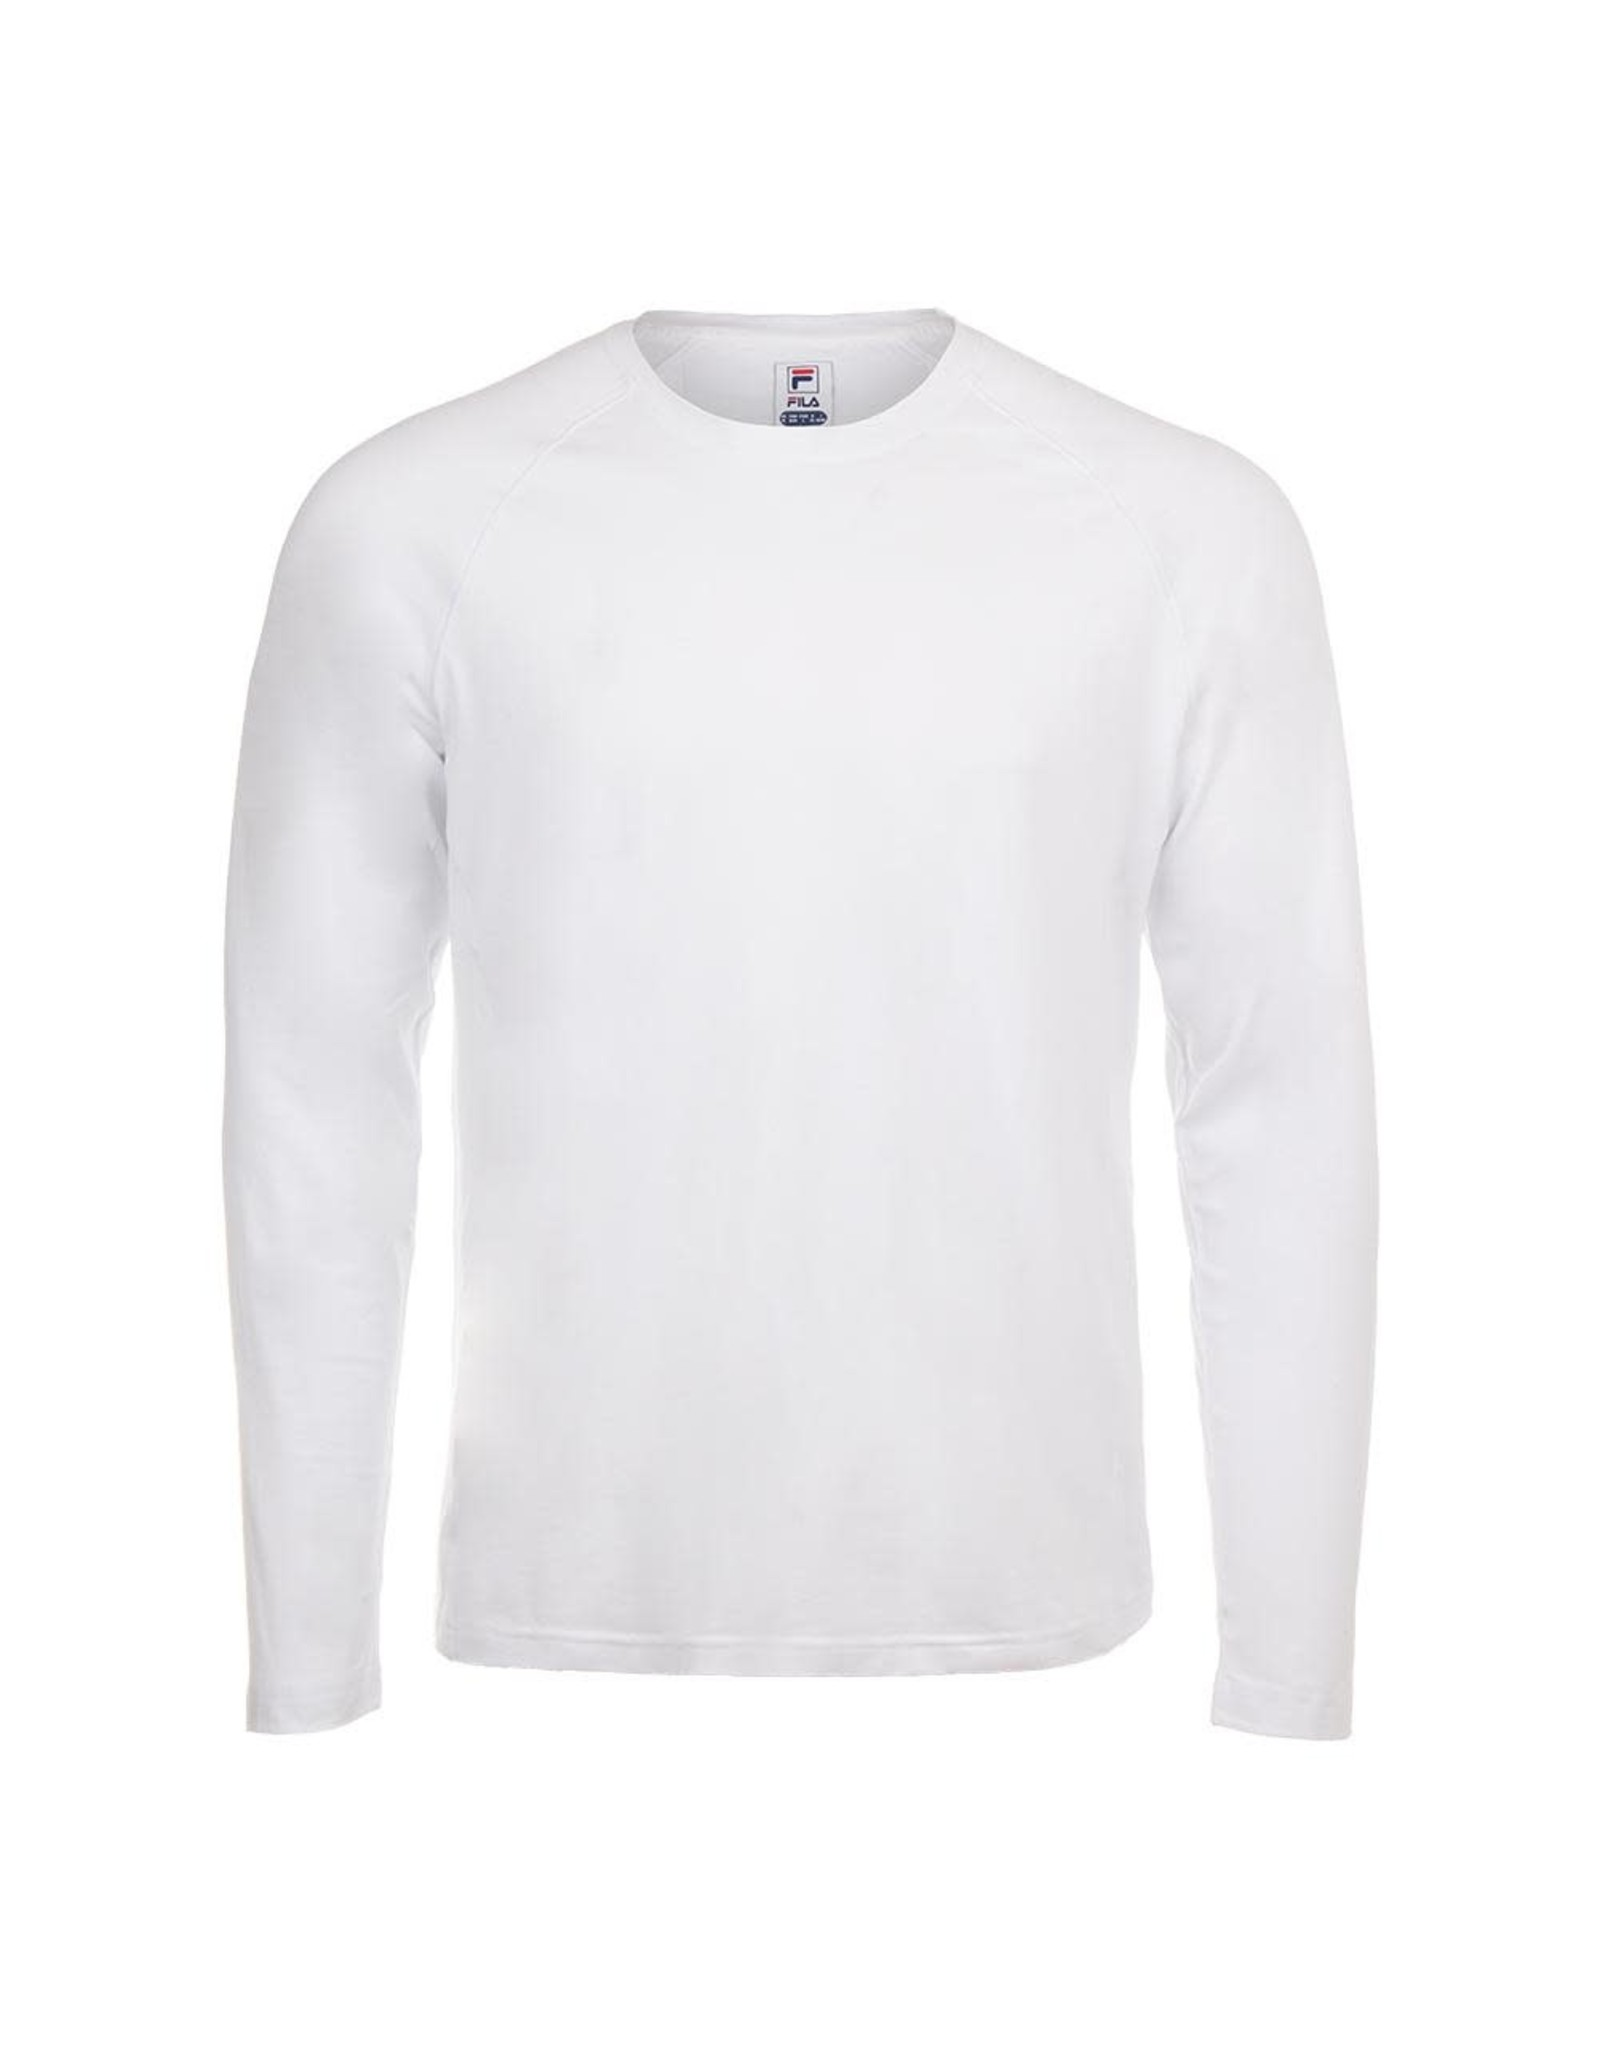 Fila UV BLOCKER LONG SLEEVE TOP